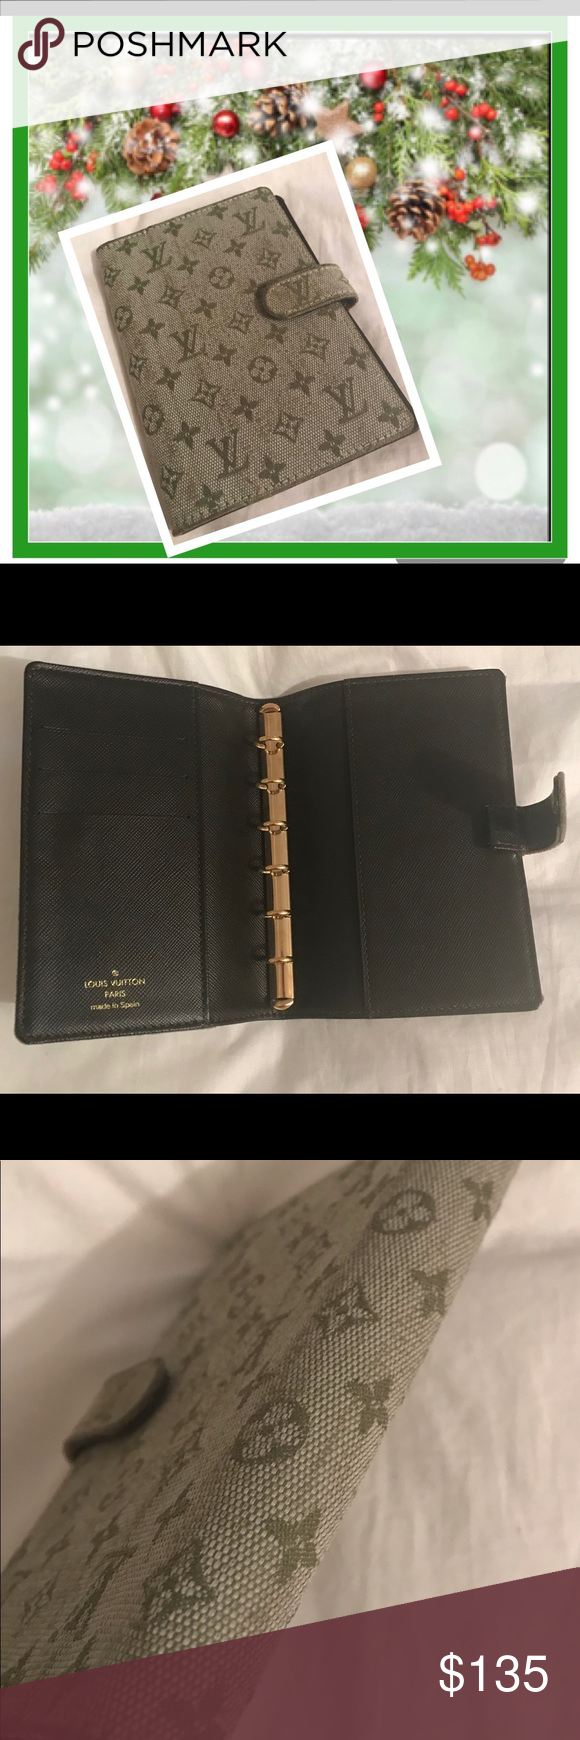 Authentic Louis Vuitton Agenda Pm Planner Preloved In Good Condition With Some Cosmetic Louis Vuitton Agenda Louis Vuitton Agenda Pm Authentic Louis Vuitton